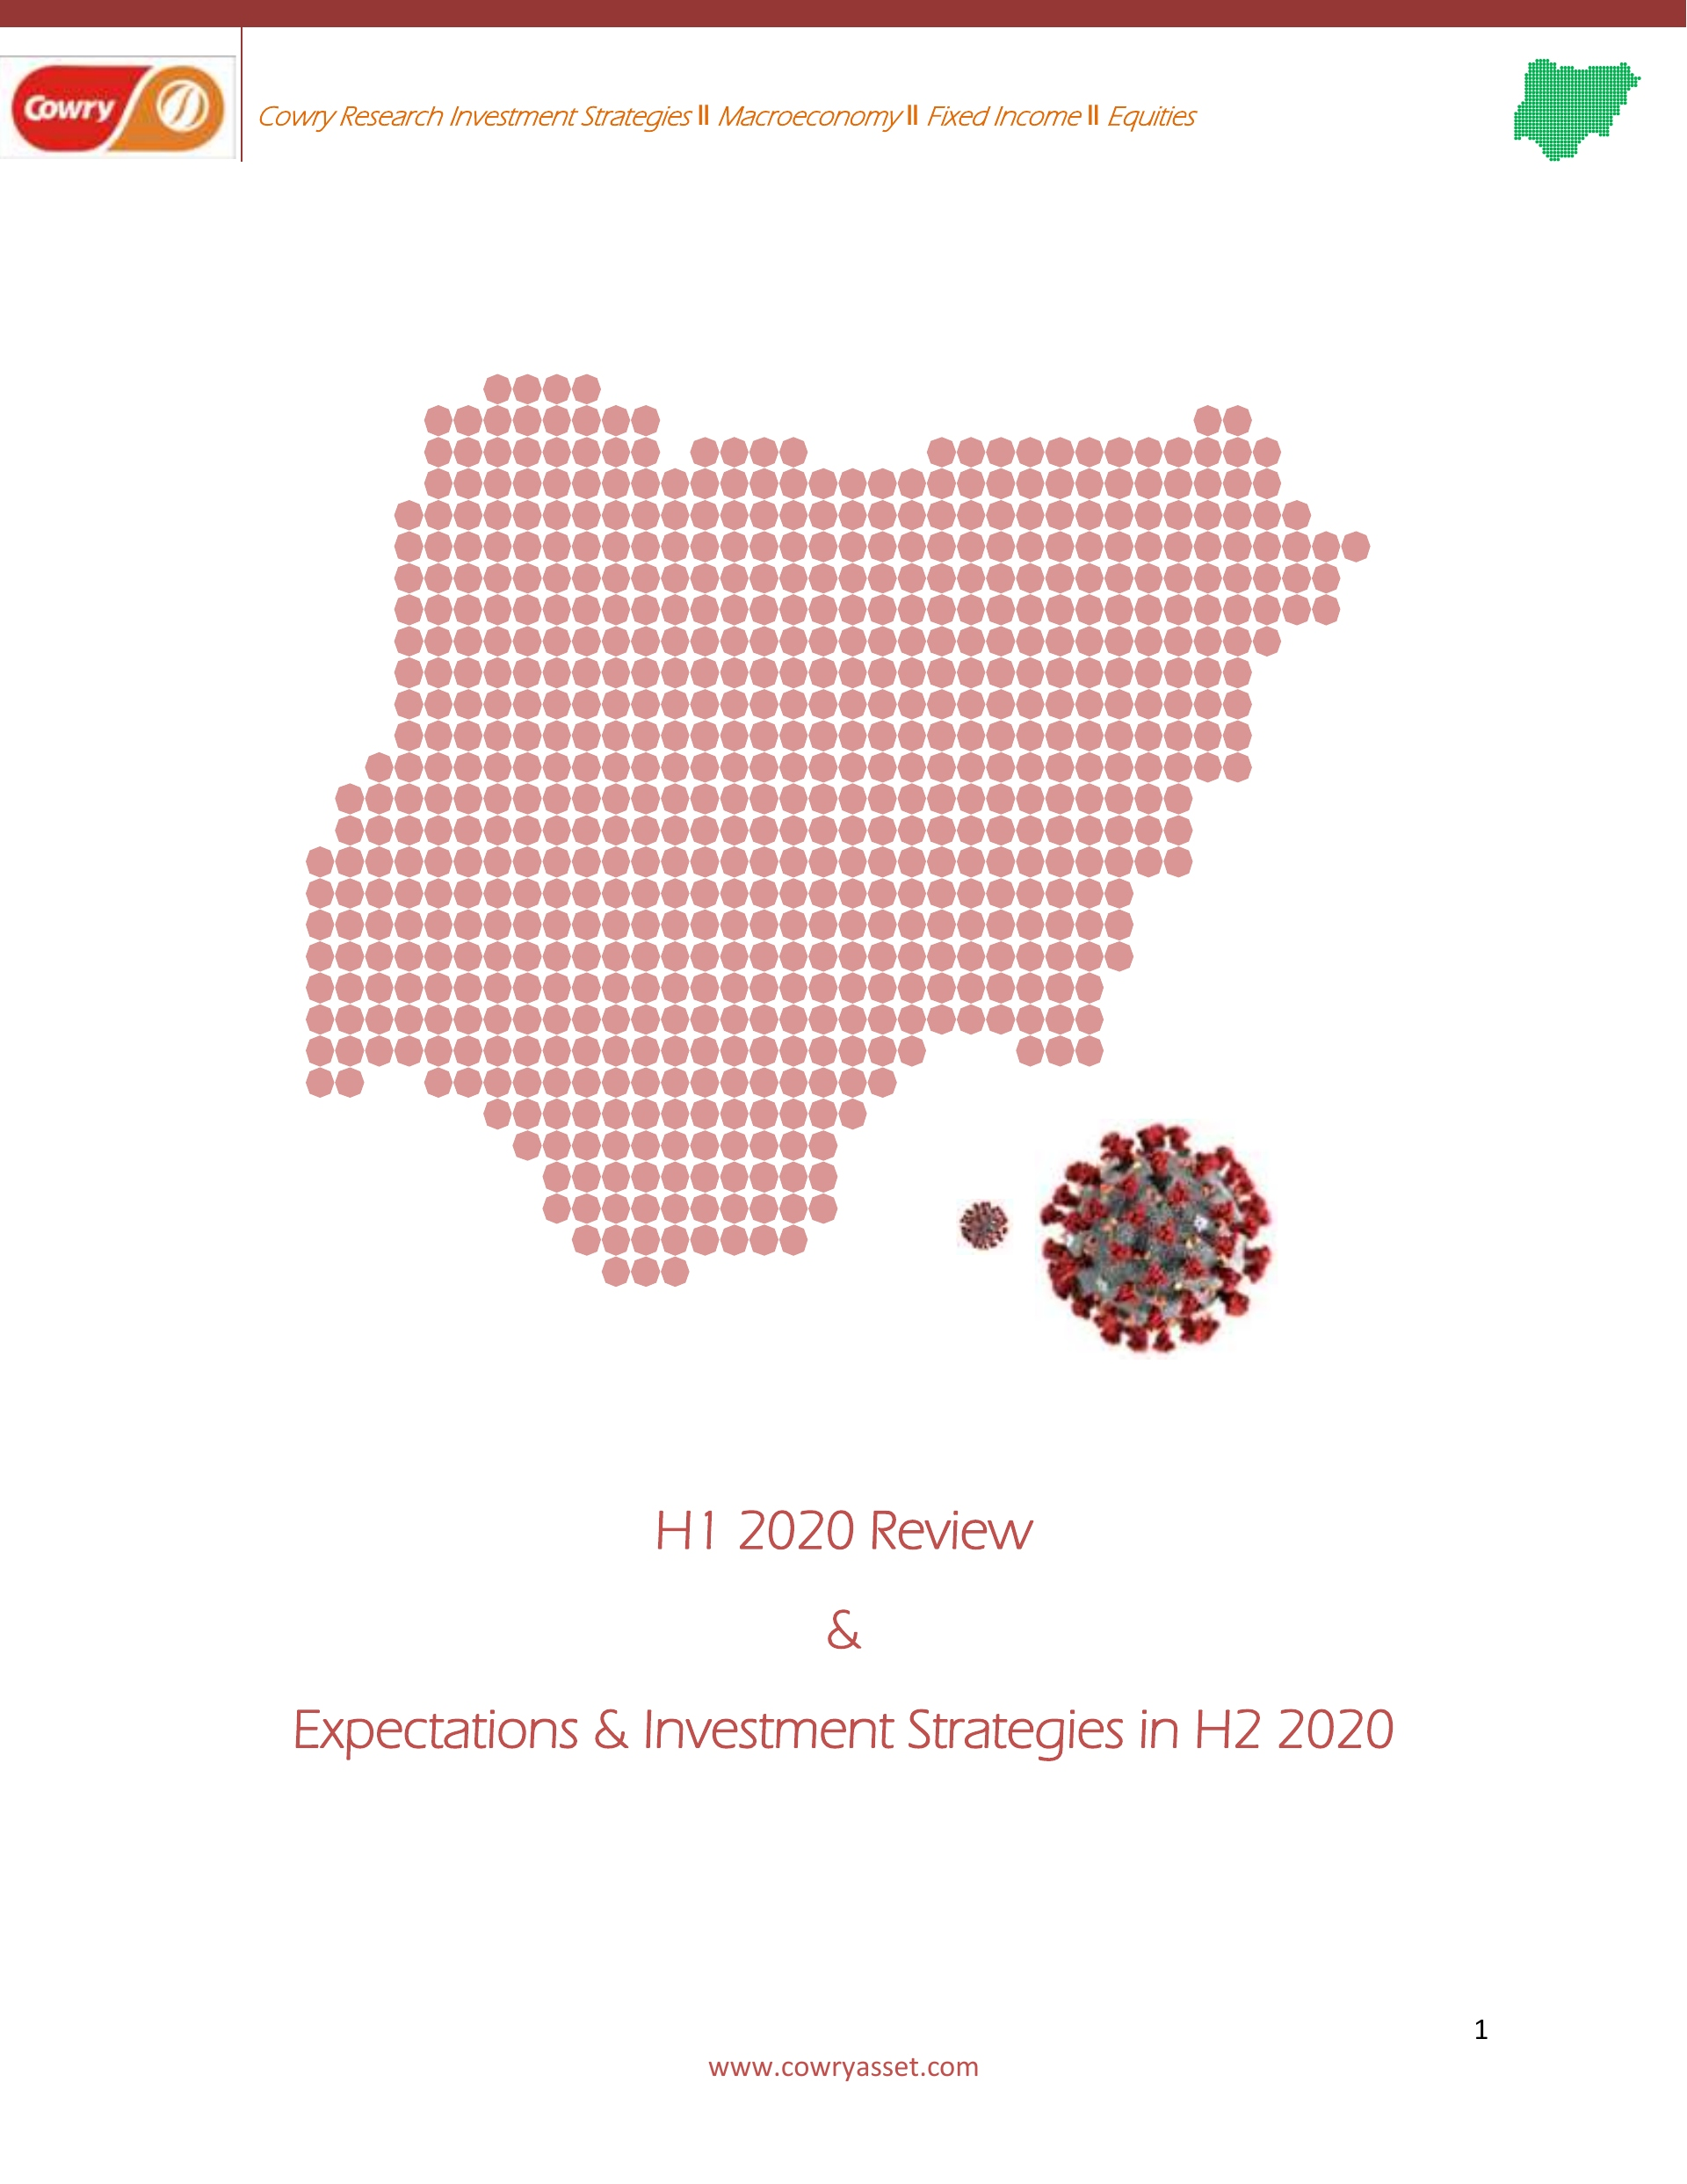 H1 2020 Review and Outlook plus Investment Strategy for H2 2020 - Brand Spur